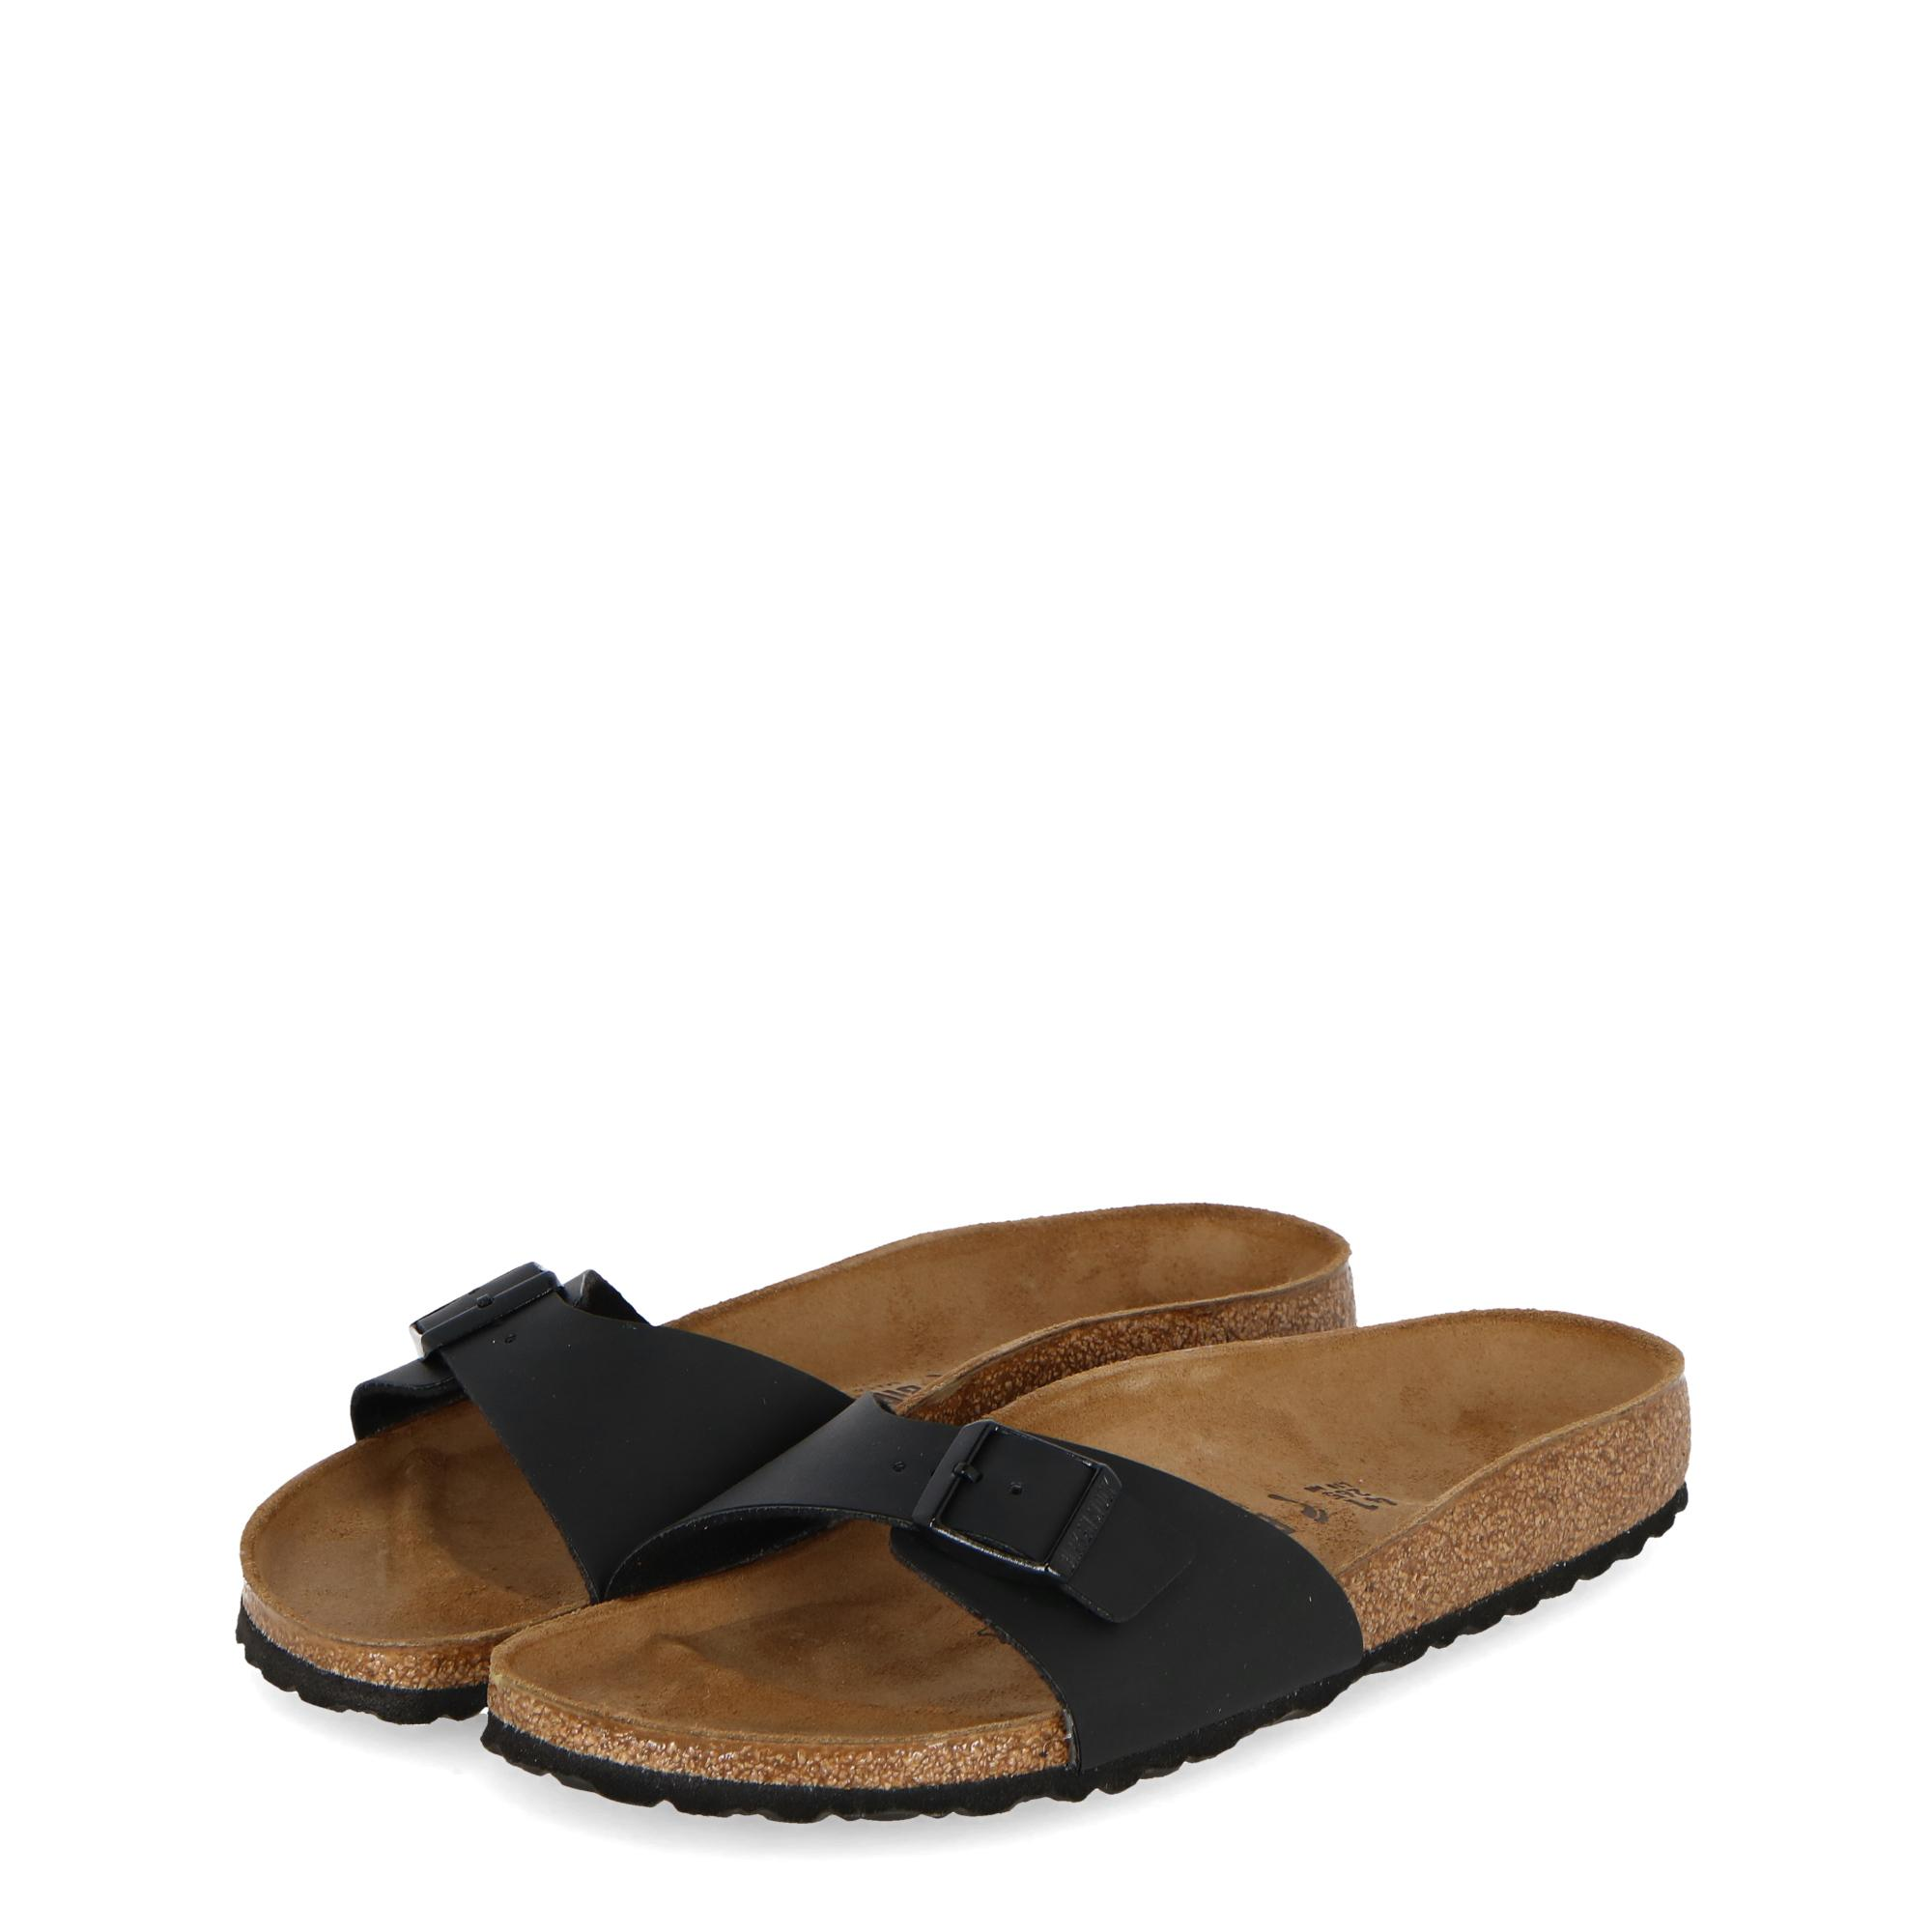 Madrid BlackTreesse Birkenstock Madrid Birkenstock Madrid Birkenstock Madrid BlackTreesse BlackTreesse BlackTreesse BlackTreesse Birkenstock Birkenstock Madrid SVLGqMpUz